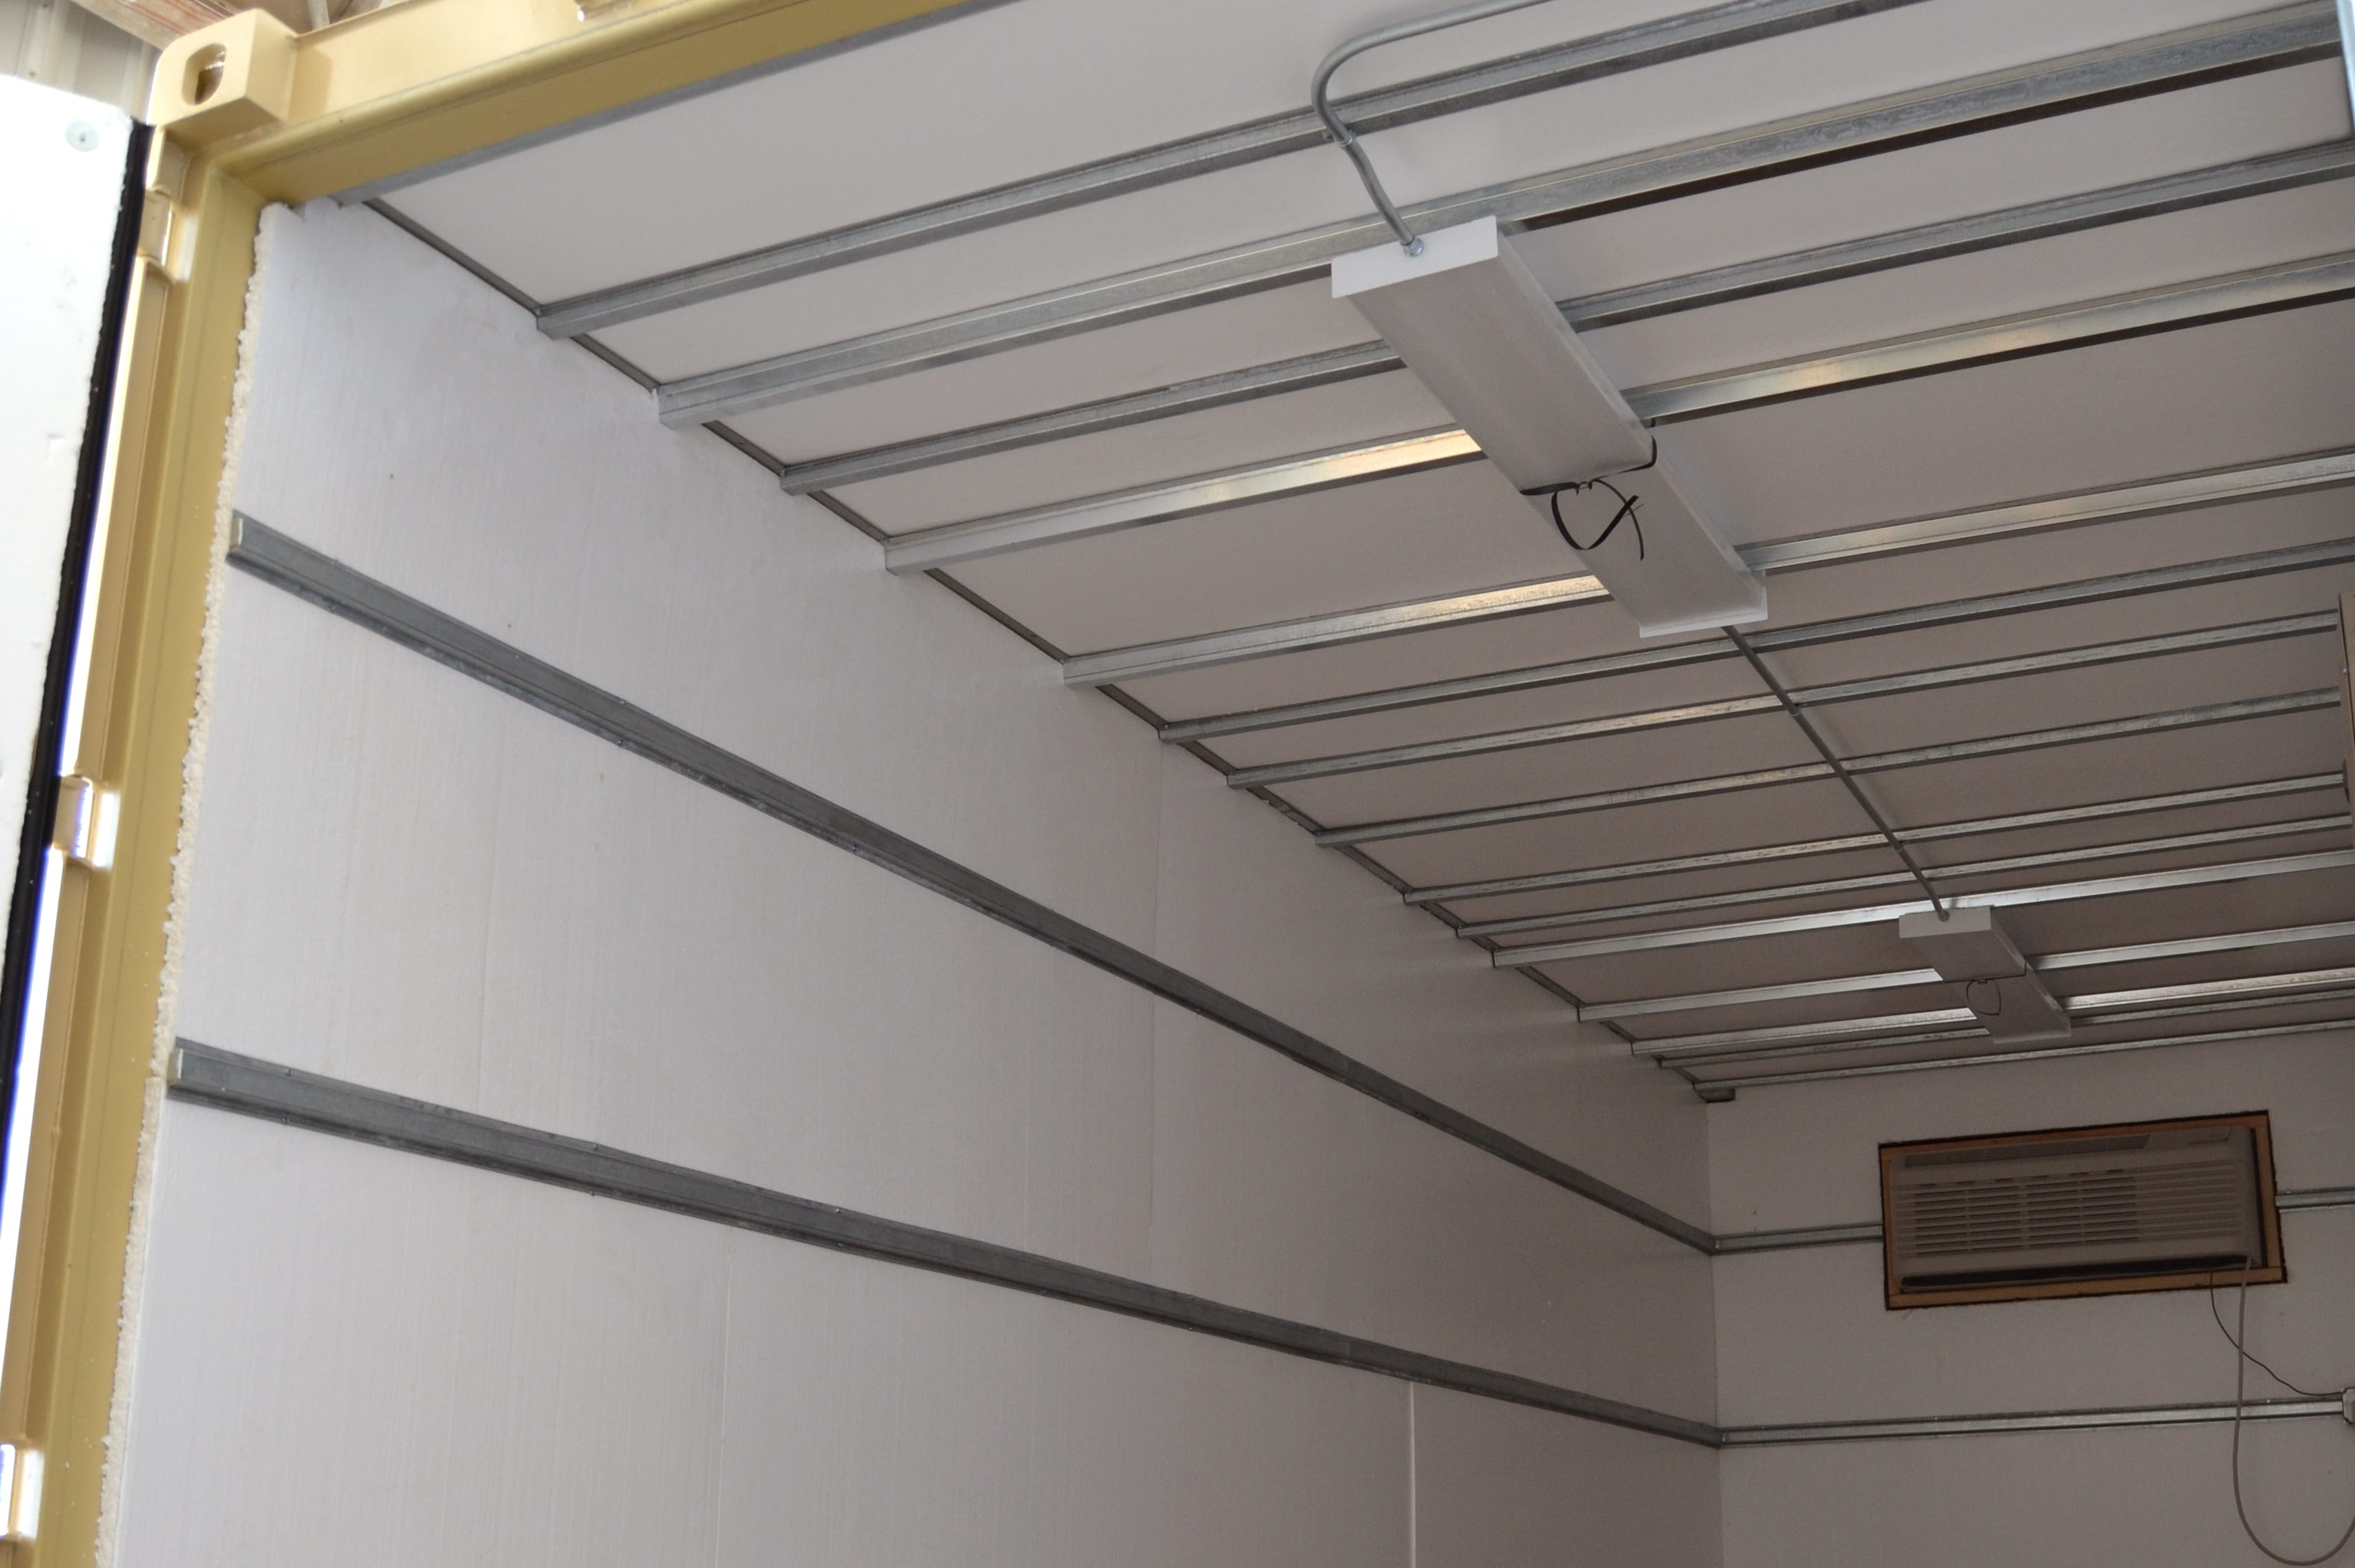 Styrofoam insulation in a modified shipping container